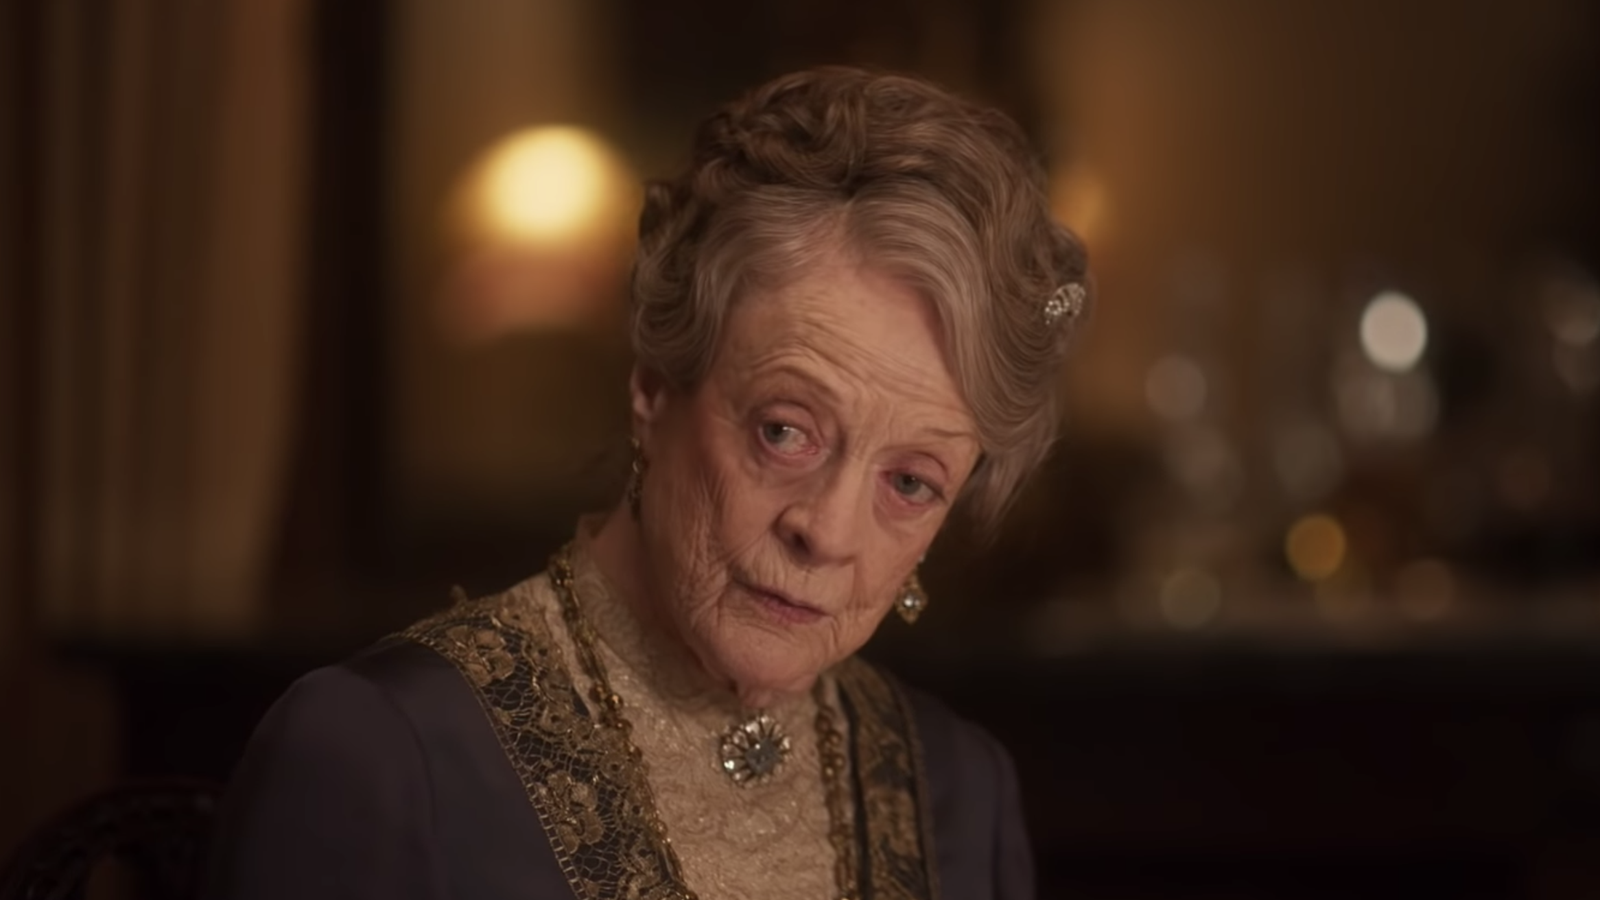 The Beautiful, Static Fantasy World of Downton Abbey